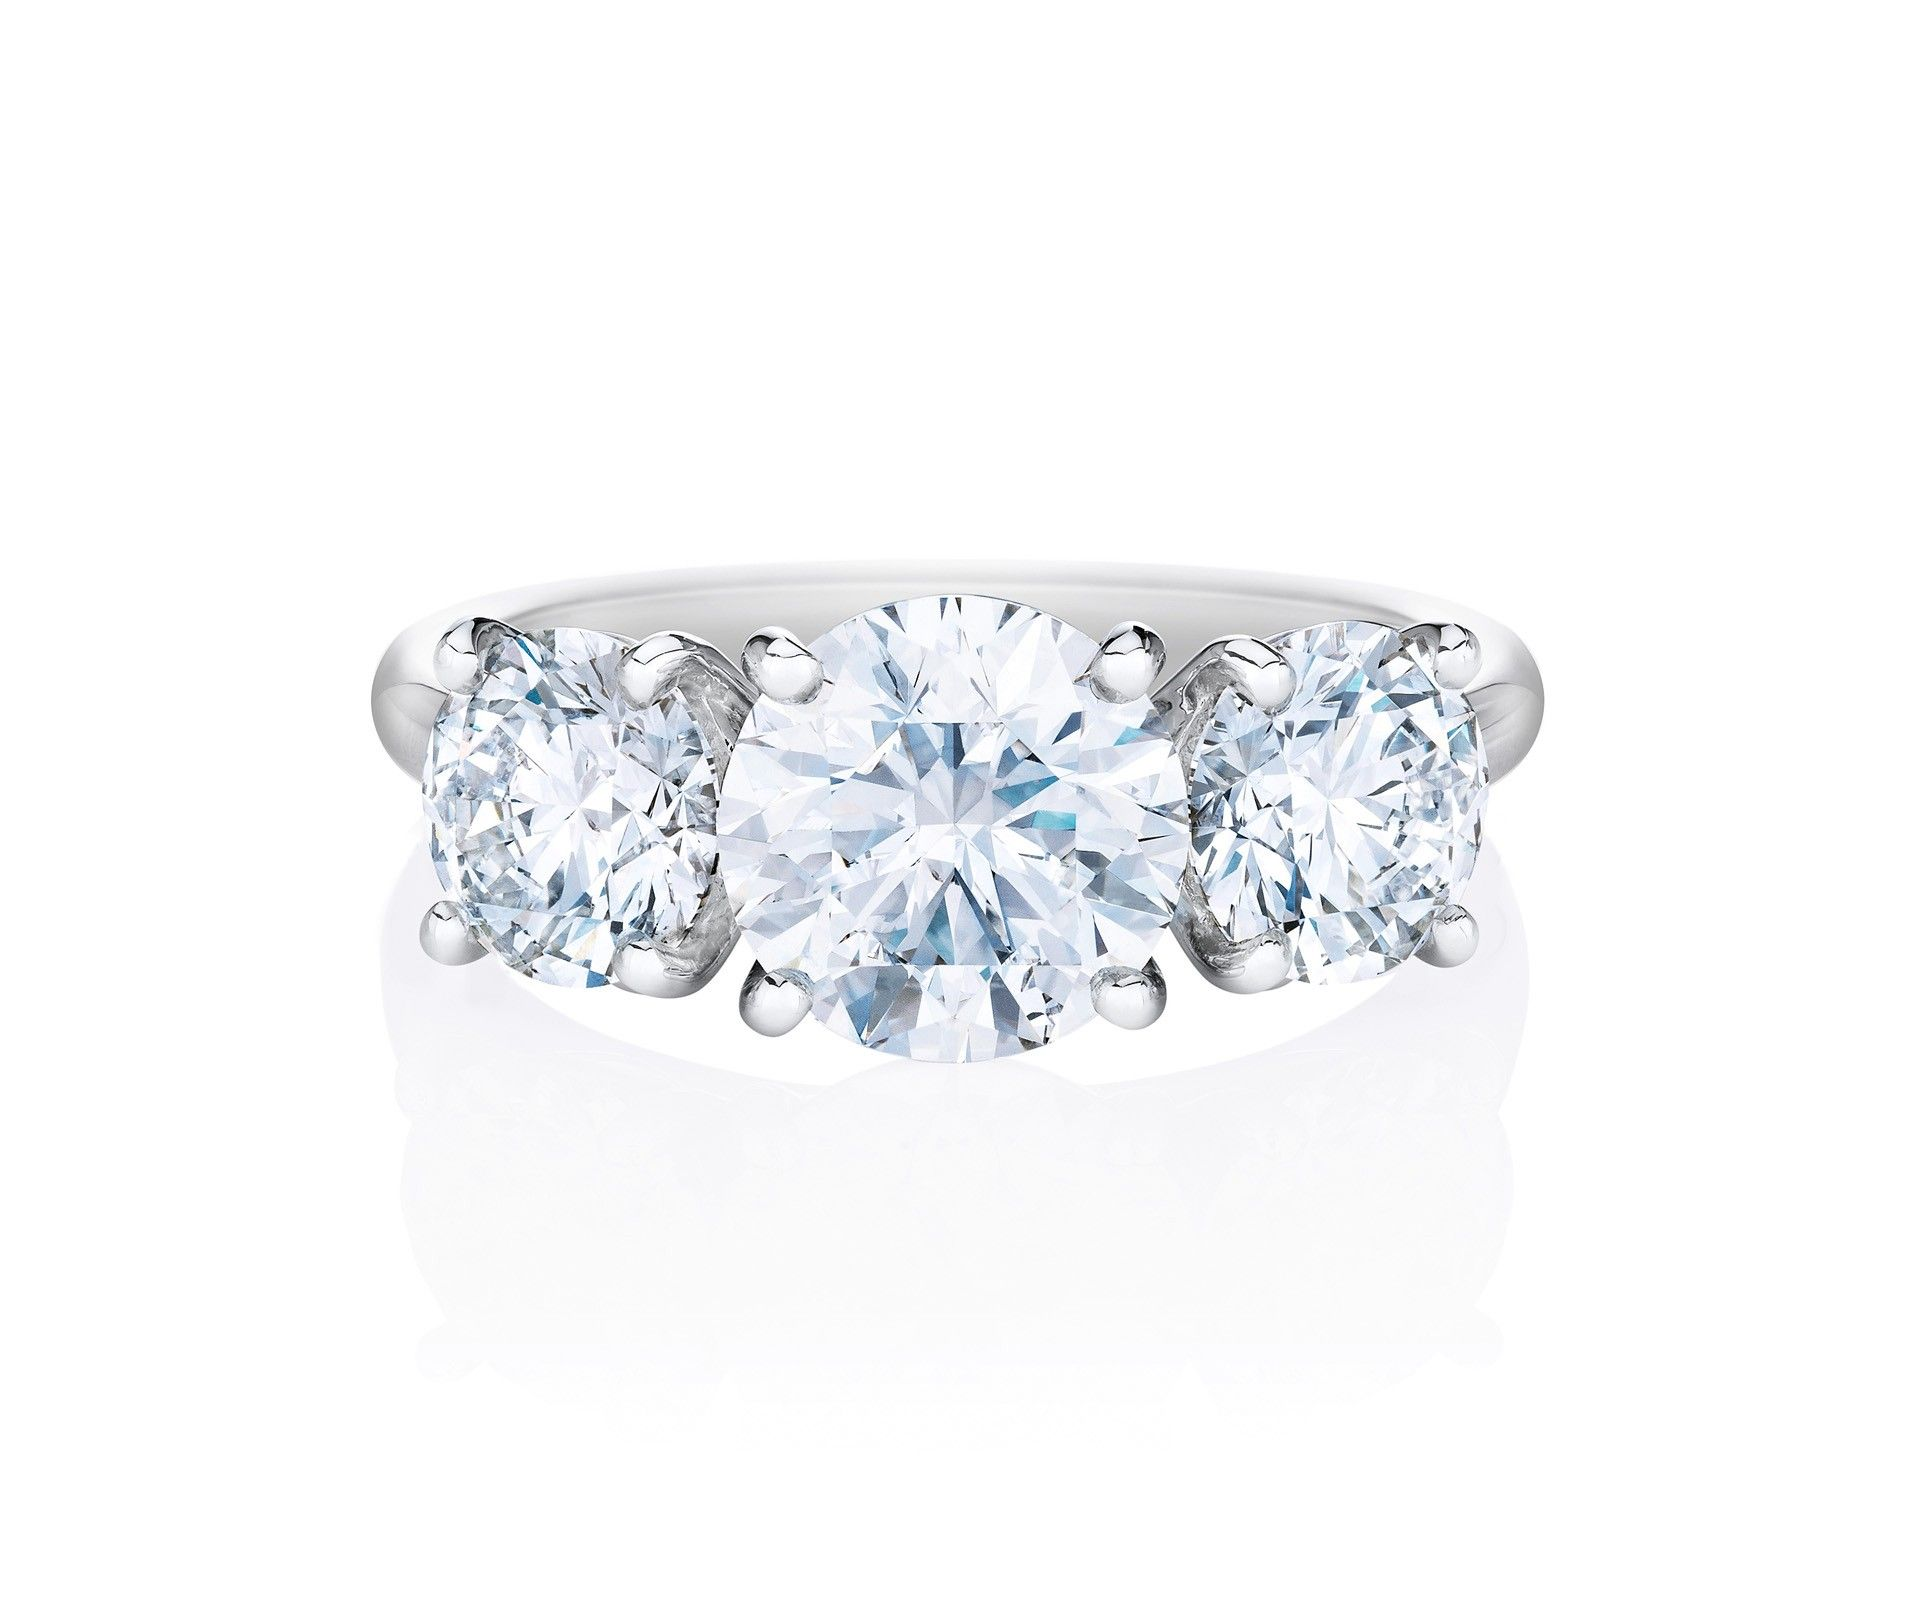 Db classic trio ring weddings pinterest ring de beers and diamond